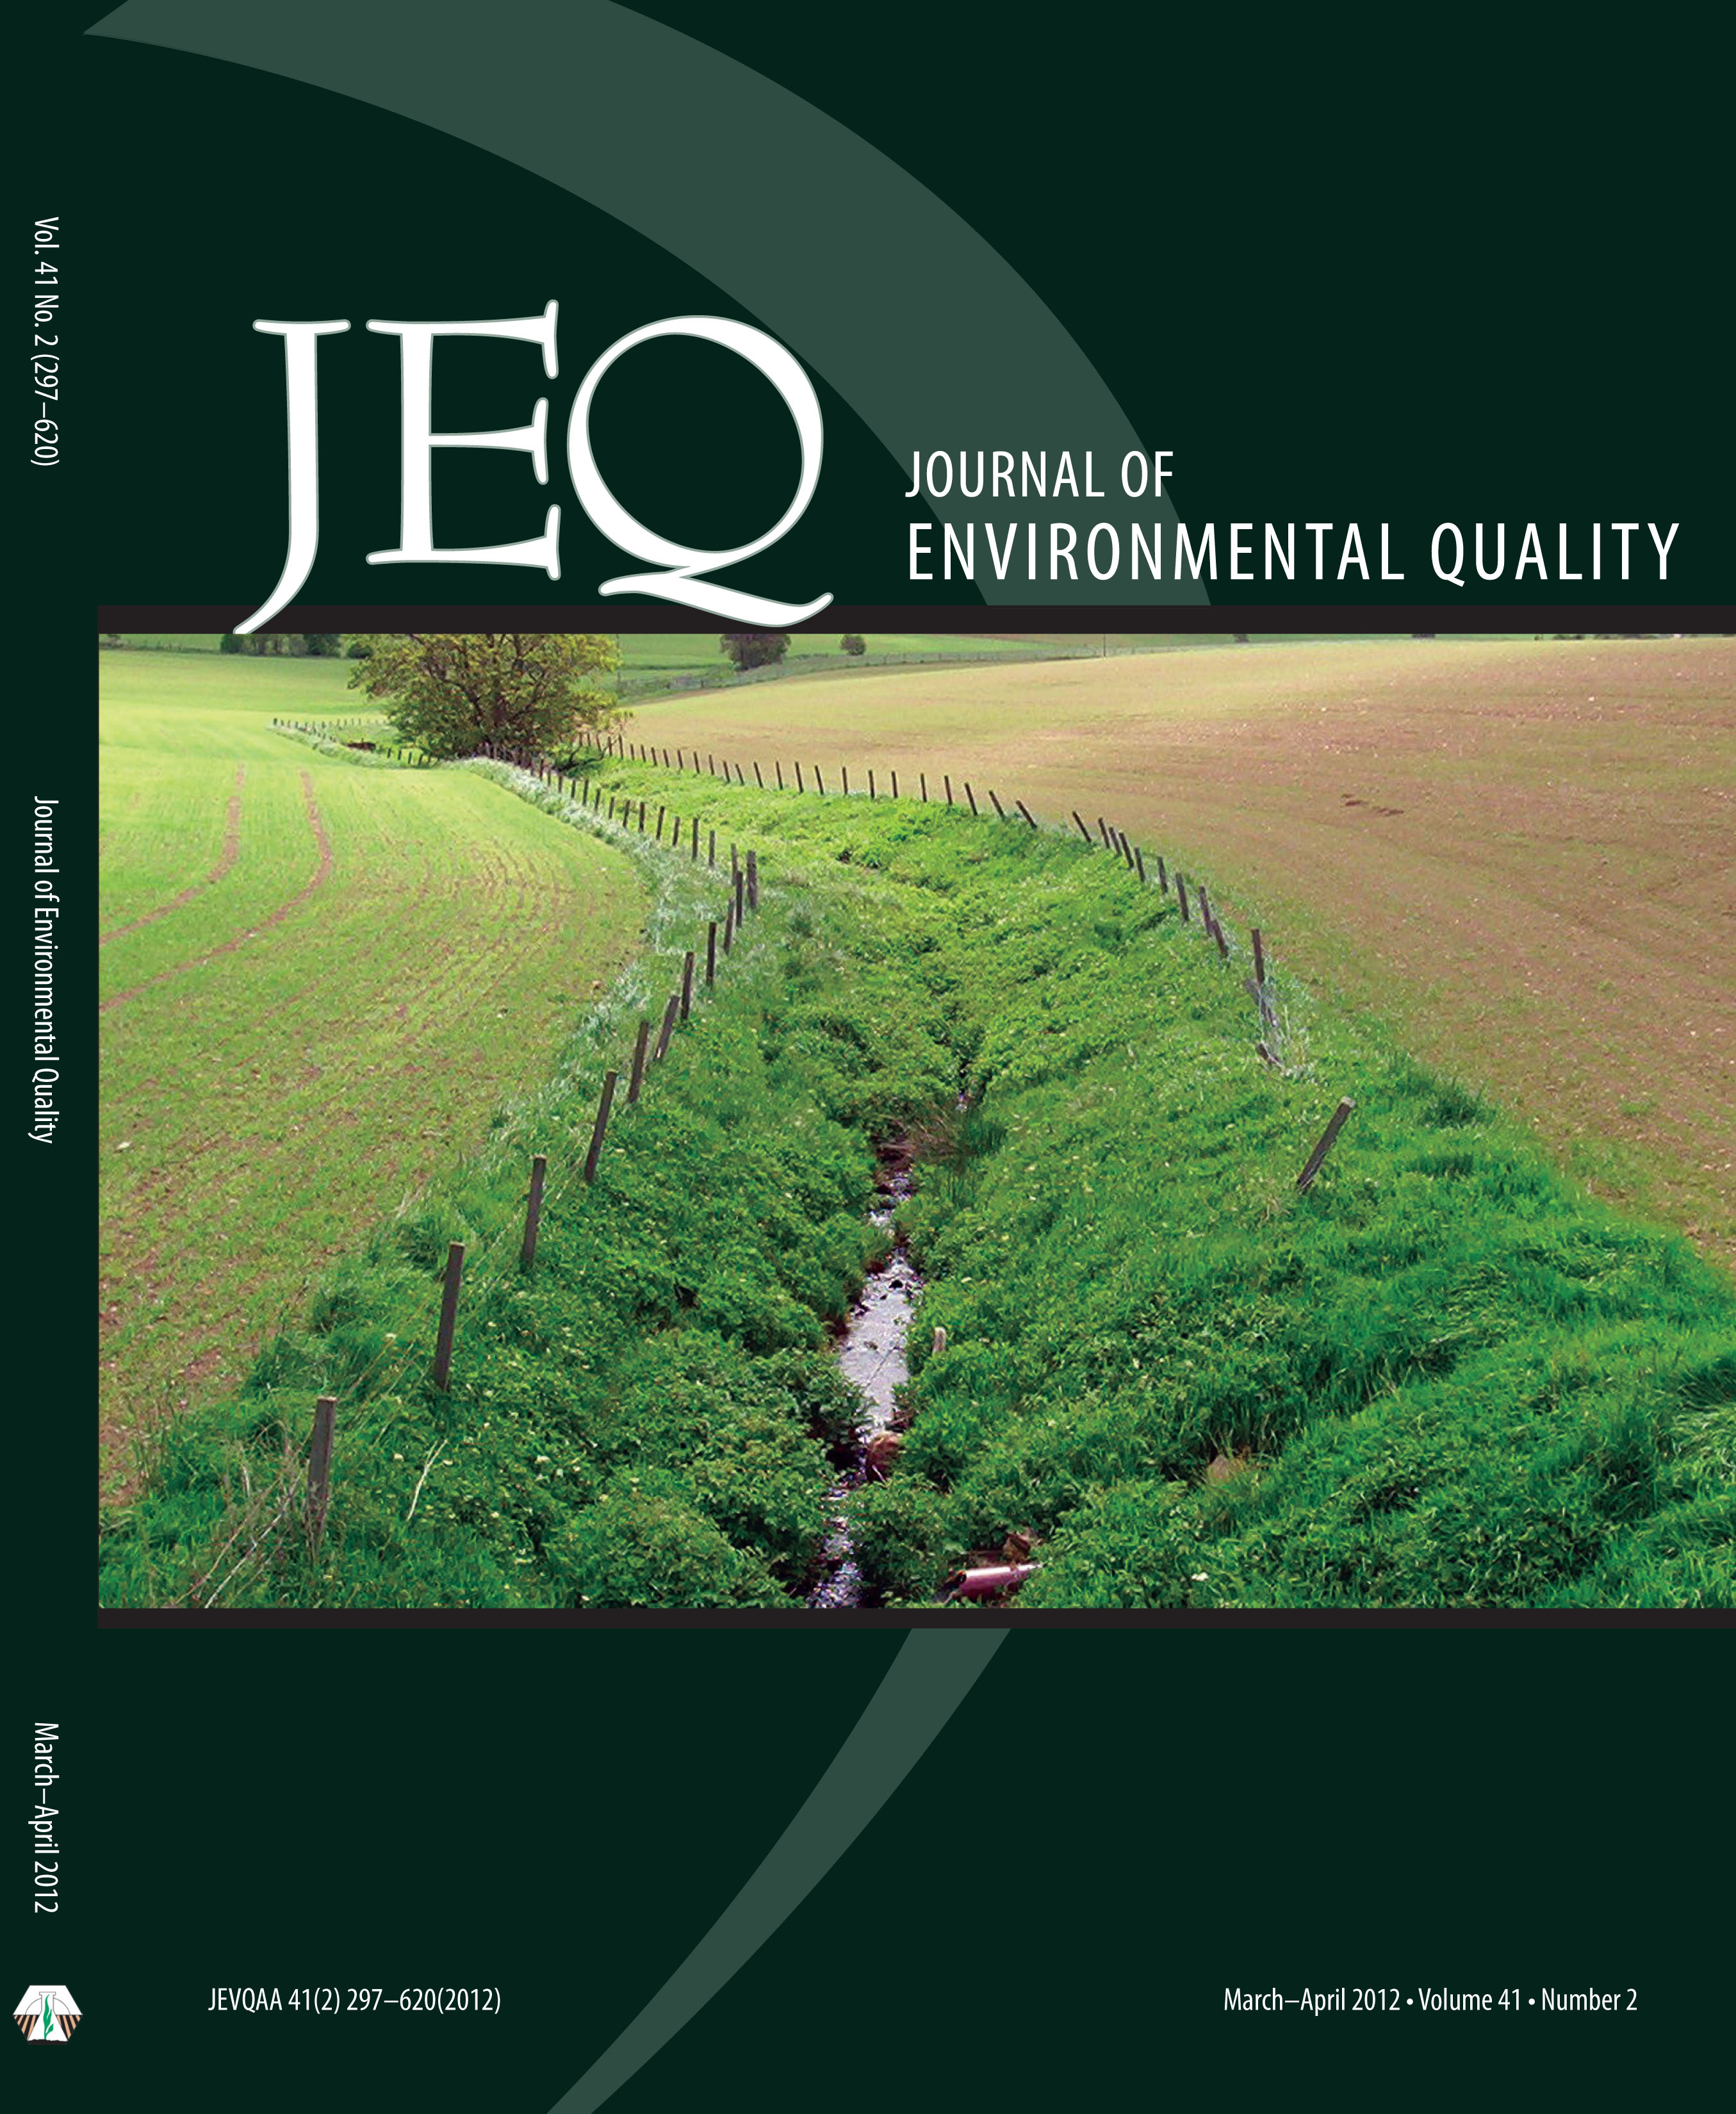 Journal of Environmental Quality